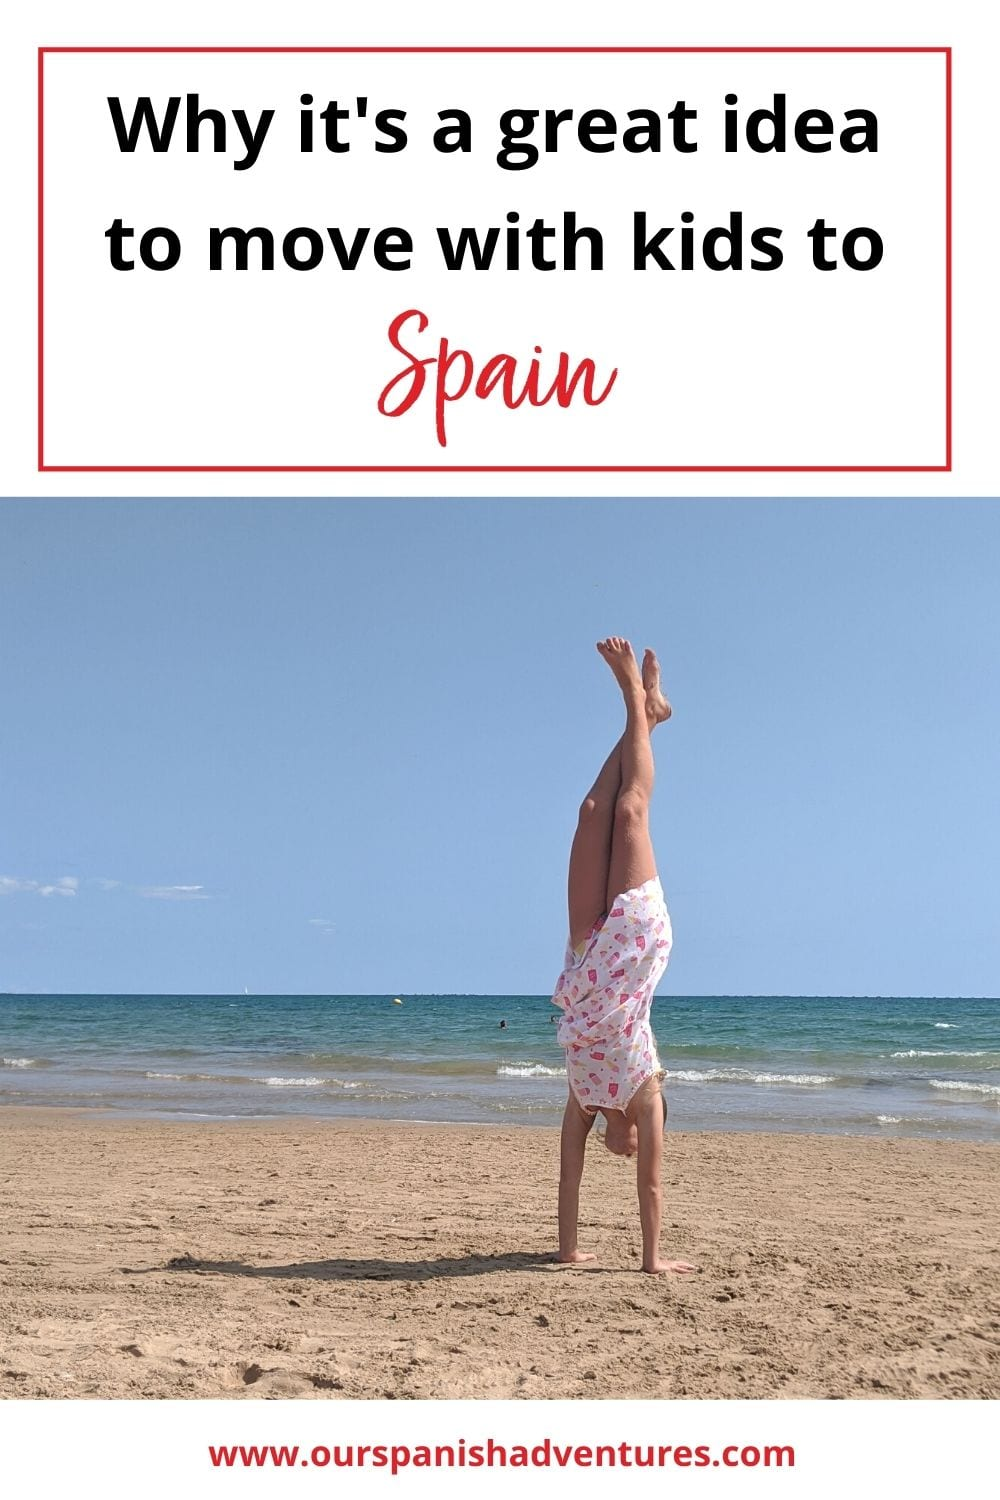 Why living abroad is good for kids | Our Spanish Adventures